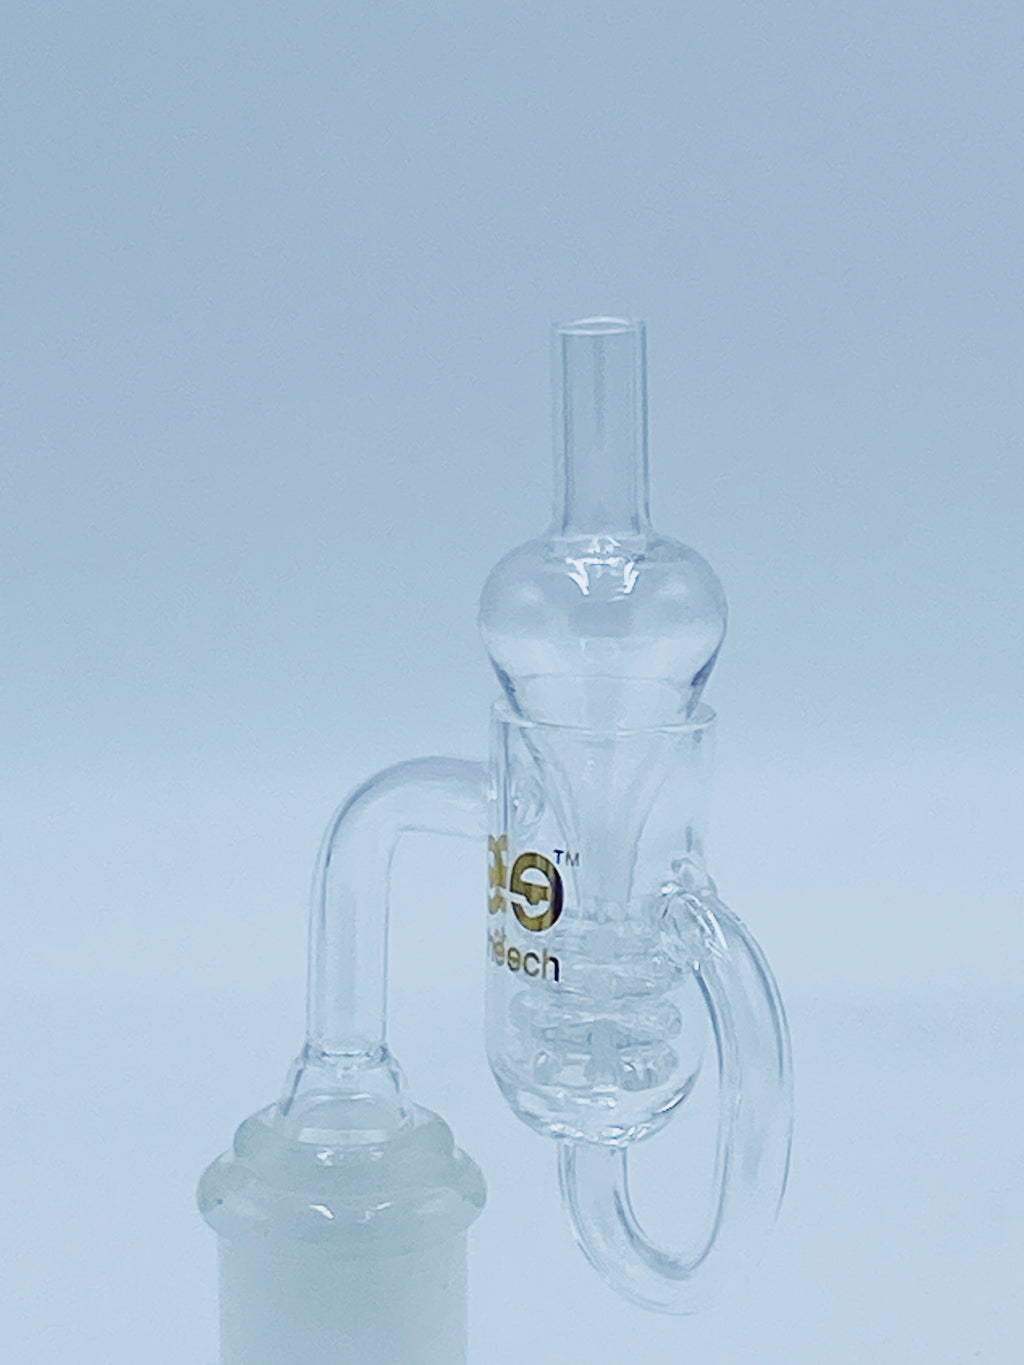 CHEECH GLASS 14MM MALE QUARTZ BANGER - Smoke Country - Land of the artistic glass blown bongs